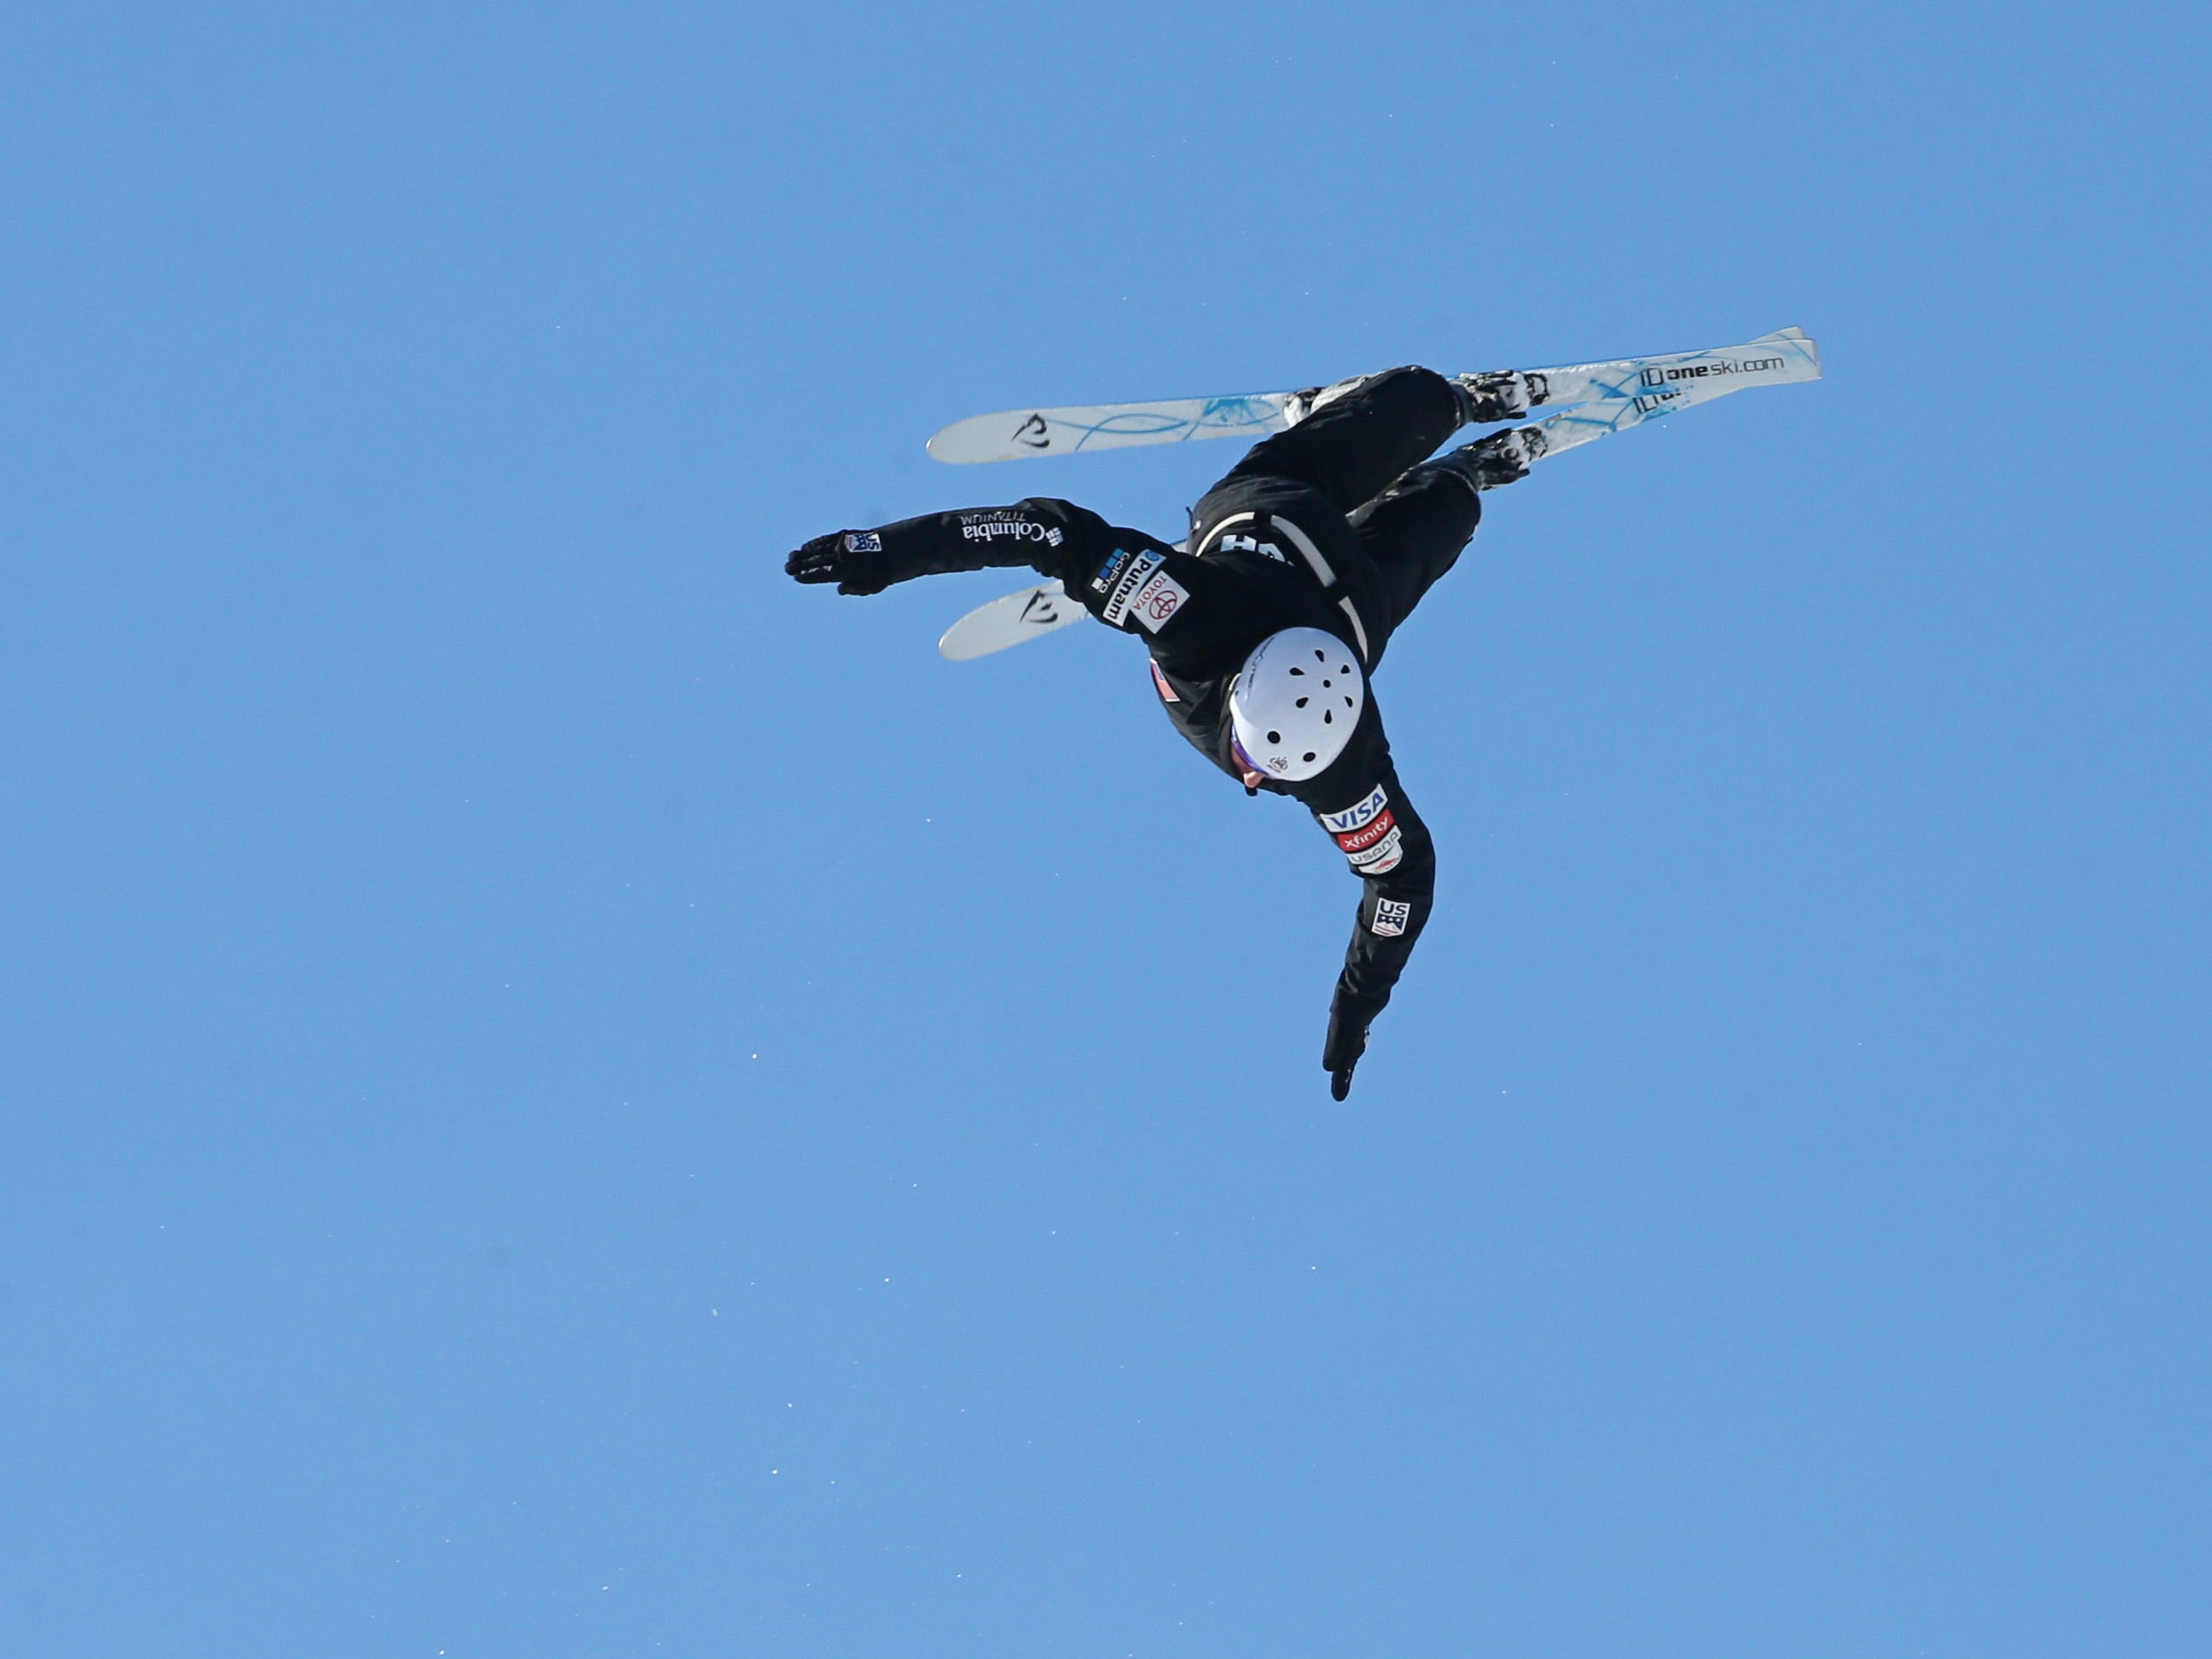 THE PHOTO: Patrick O'Flynn of Rochester, member the U.S. Ski & Snowboard Team Freestyle (Aerials), flips and spins on his first jump of the day at the new Freestyle Aerial Ski jump facility at Bristol Mountain ski resort in Canandaigua Sunday, Jan, 13. FROM SHAWN: This was the first time I have ever photographed aerial skiing - it's amazing, insane, and ridiculously fast.  Shooting with a 100-400 zoom lens from the base of the jump, you don't really see the skiers until each one shoots off the end of one of the three ramps at Bristol.  Then it's a race to lens the skier and make some cool photos as they spin and land.